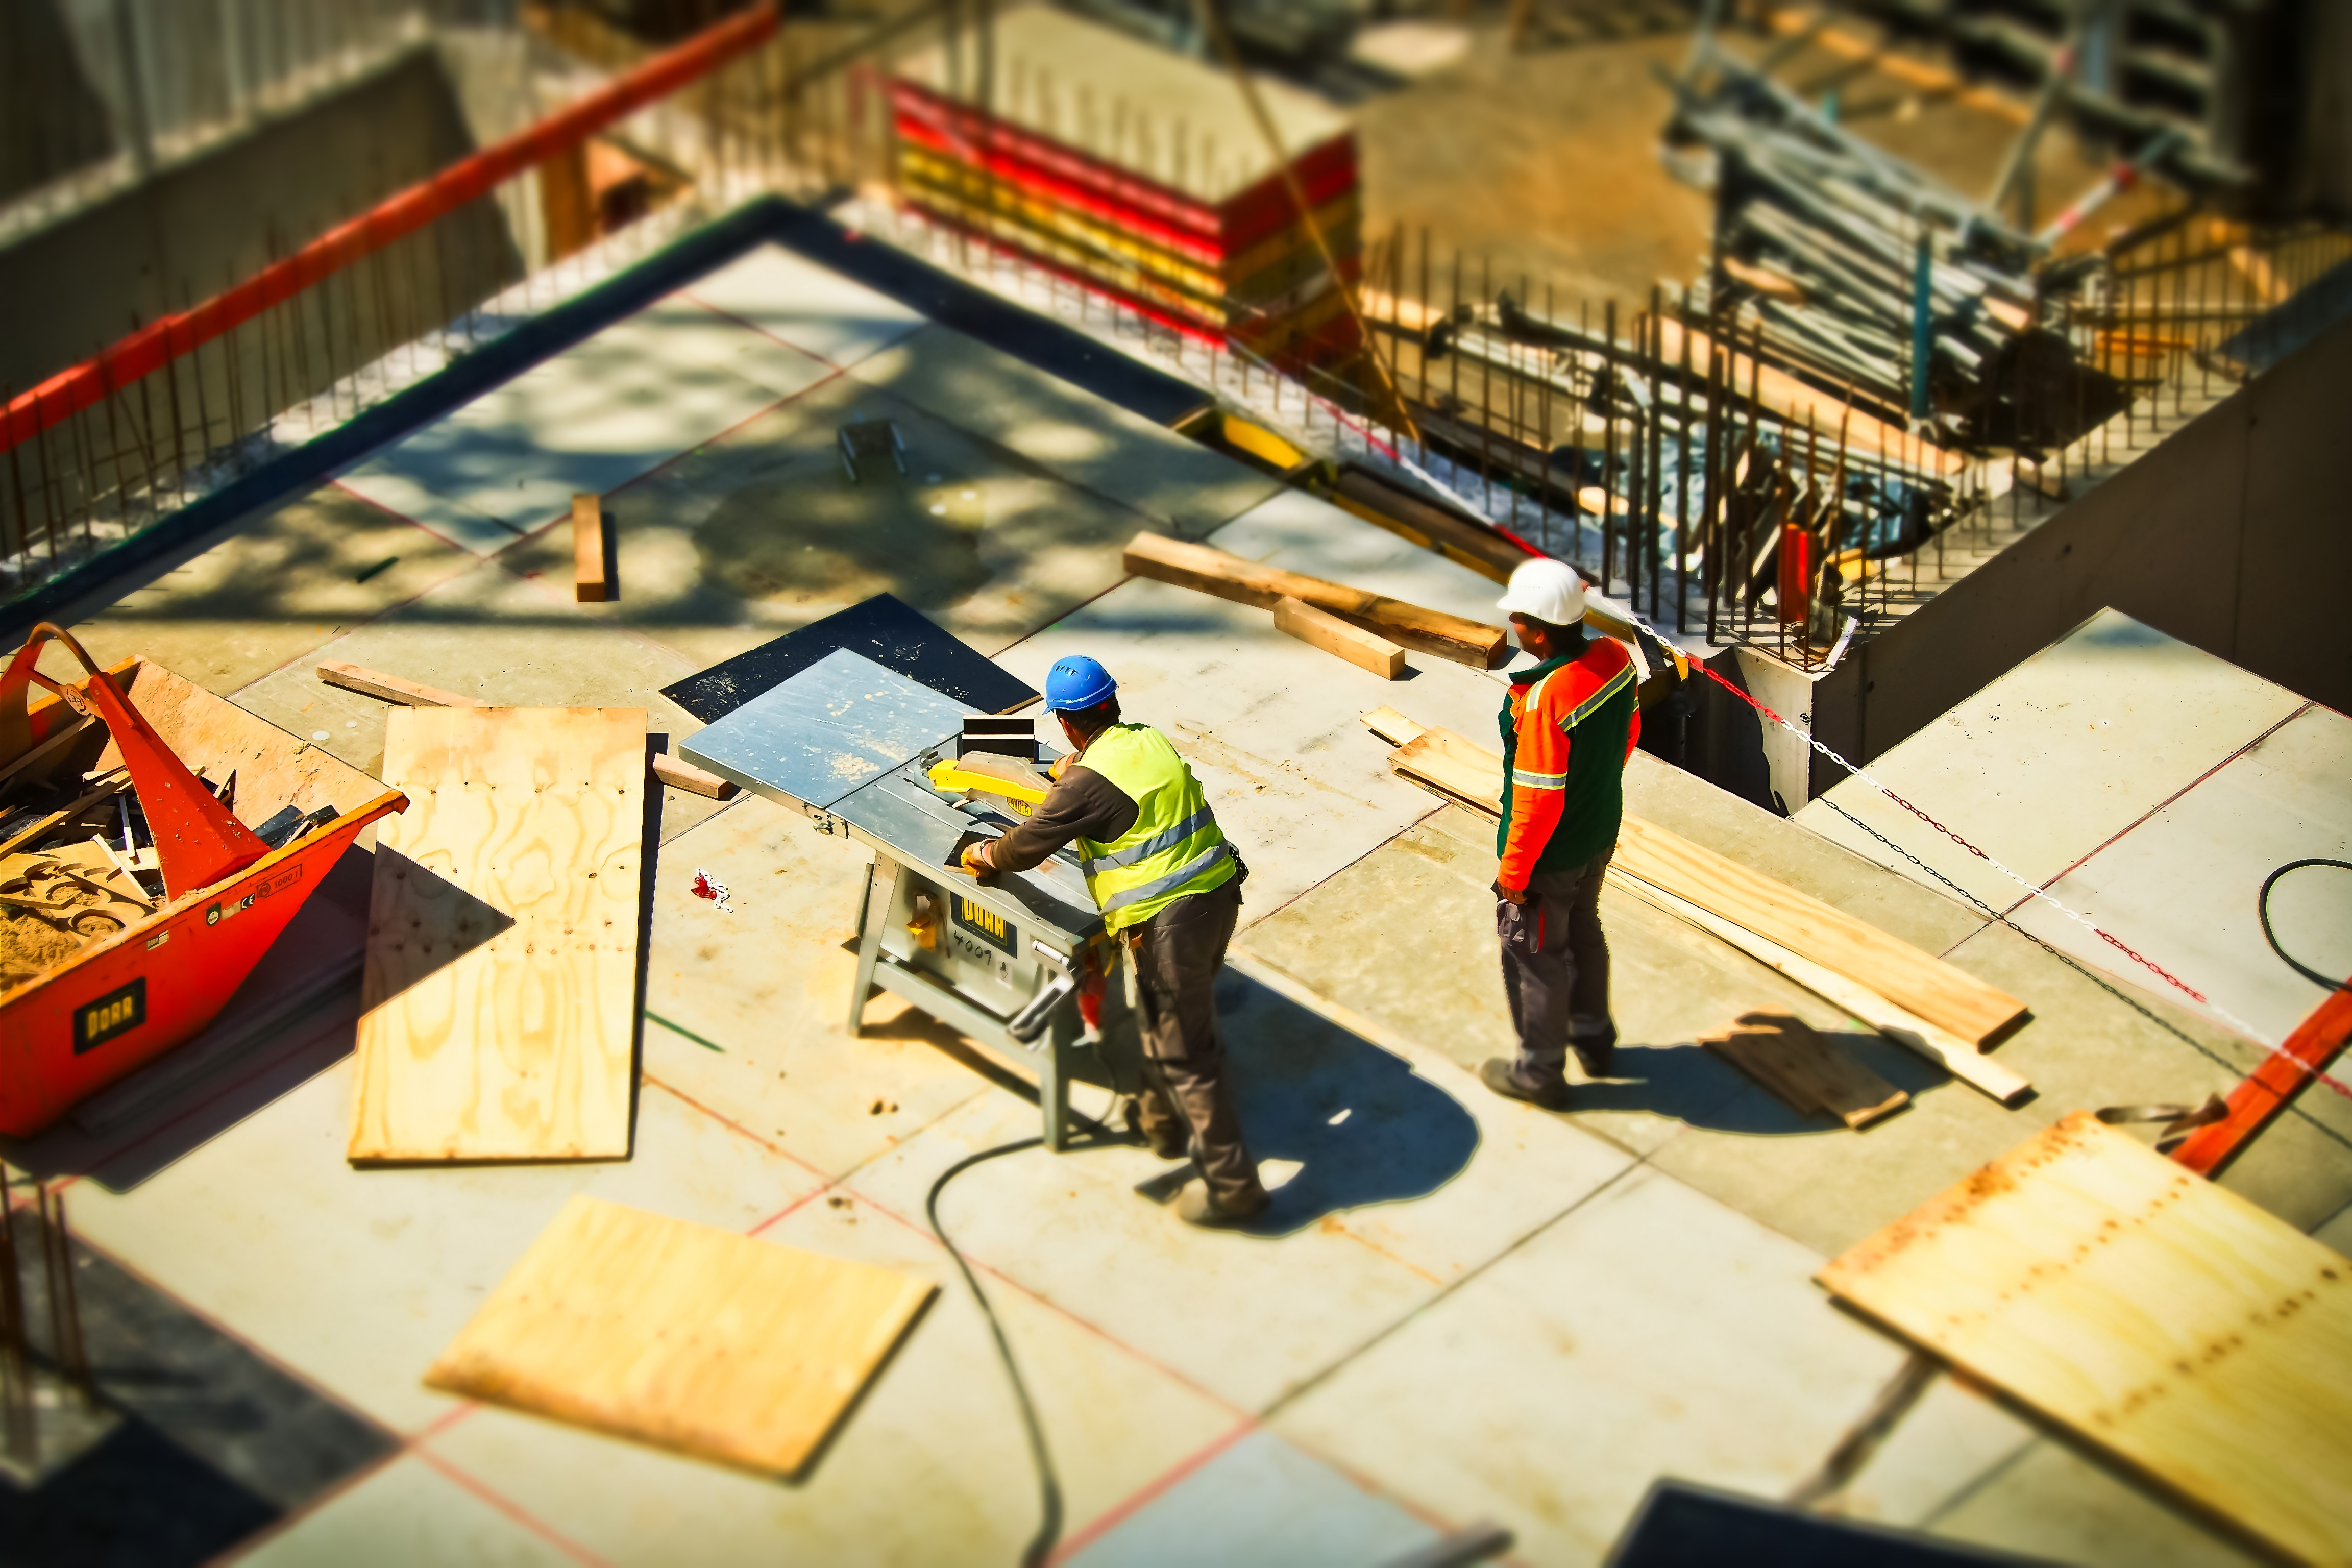 Electrical contractors can qualify for R&D credits